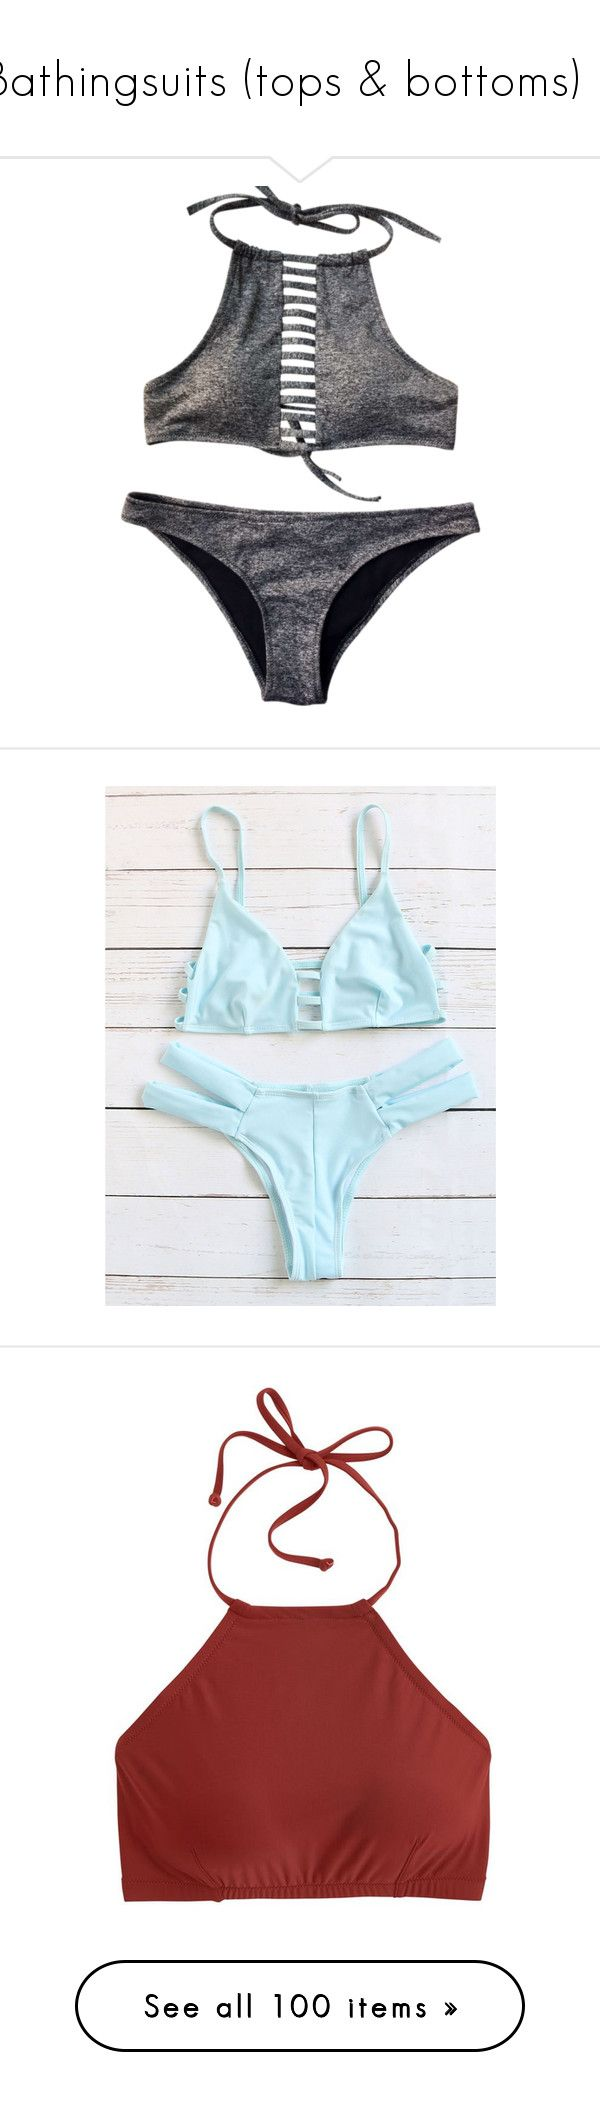 """Bathingsuits (tops & bottoms) 😎"" by one-of-those-nights ❤ liked on Polyvore featuring swimwear, bikinis, blue bikini, sexy bikini, triangle bikini swimwear, cut-out bikinis, cutout swimwear, bikini tops, tops and crop tops"